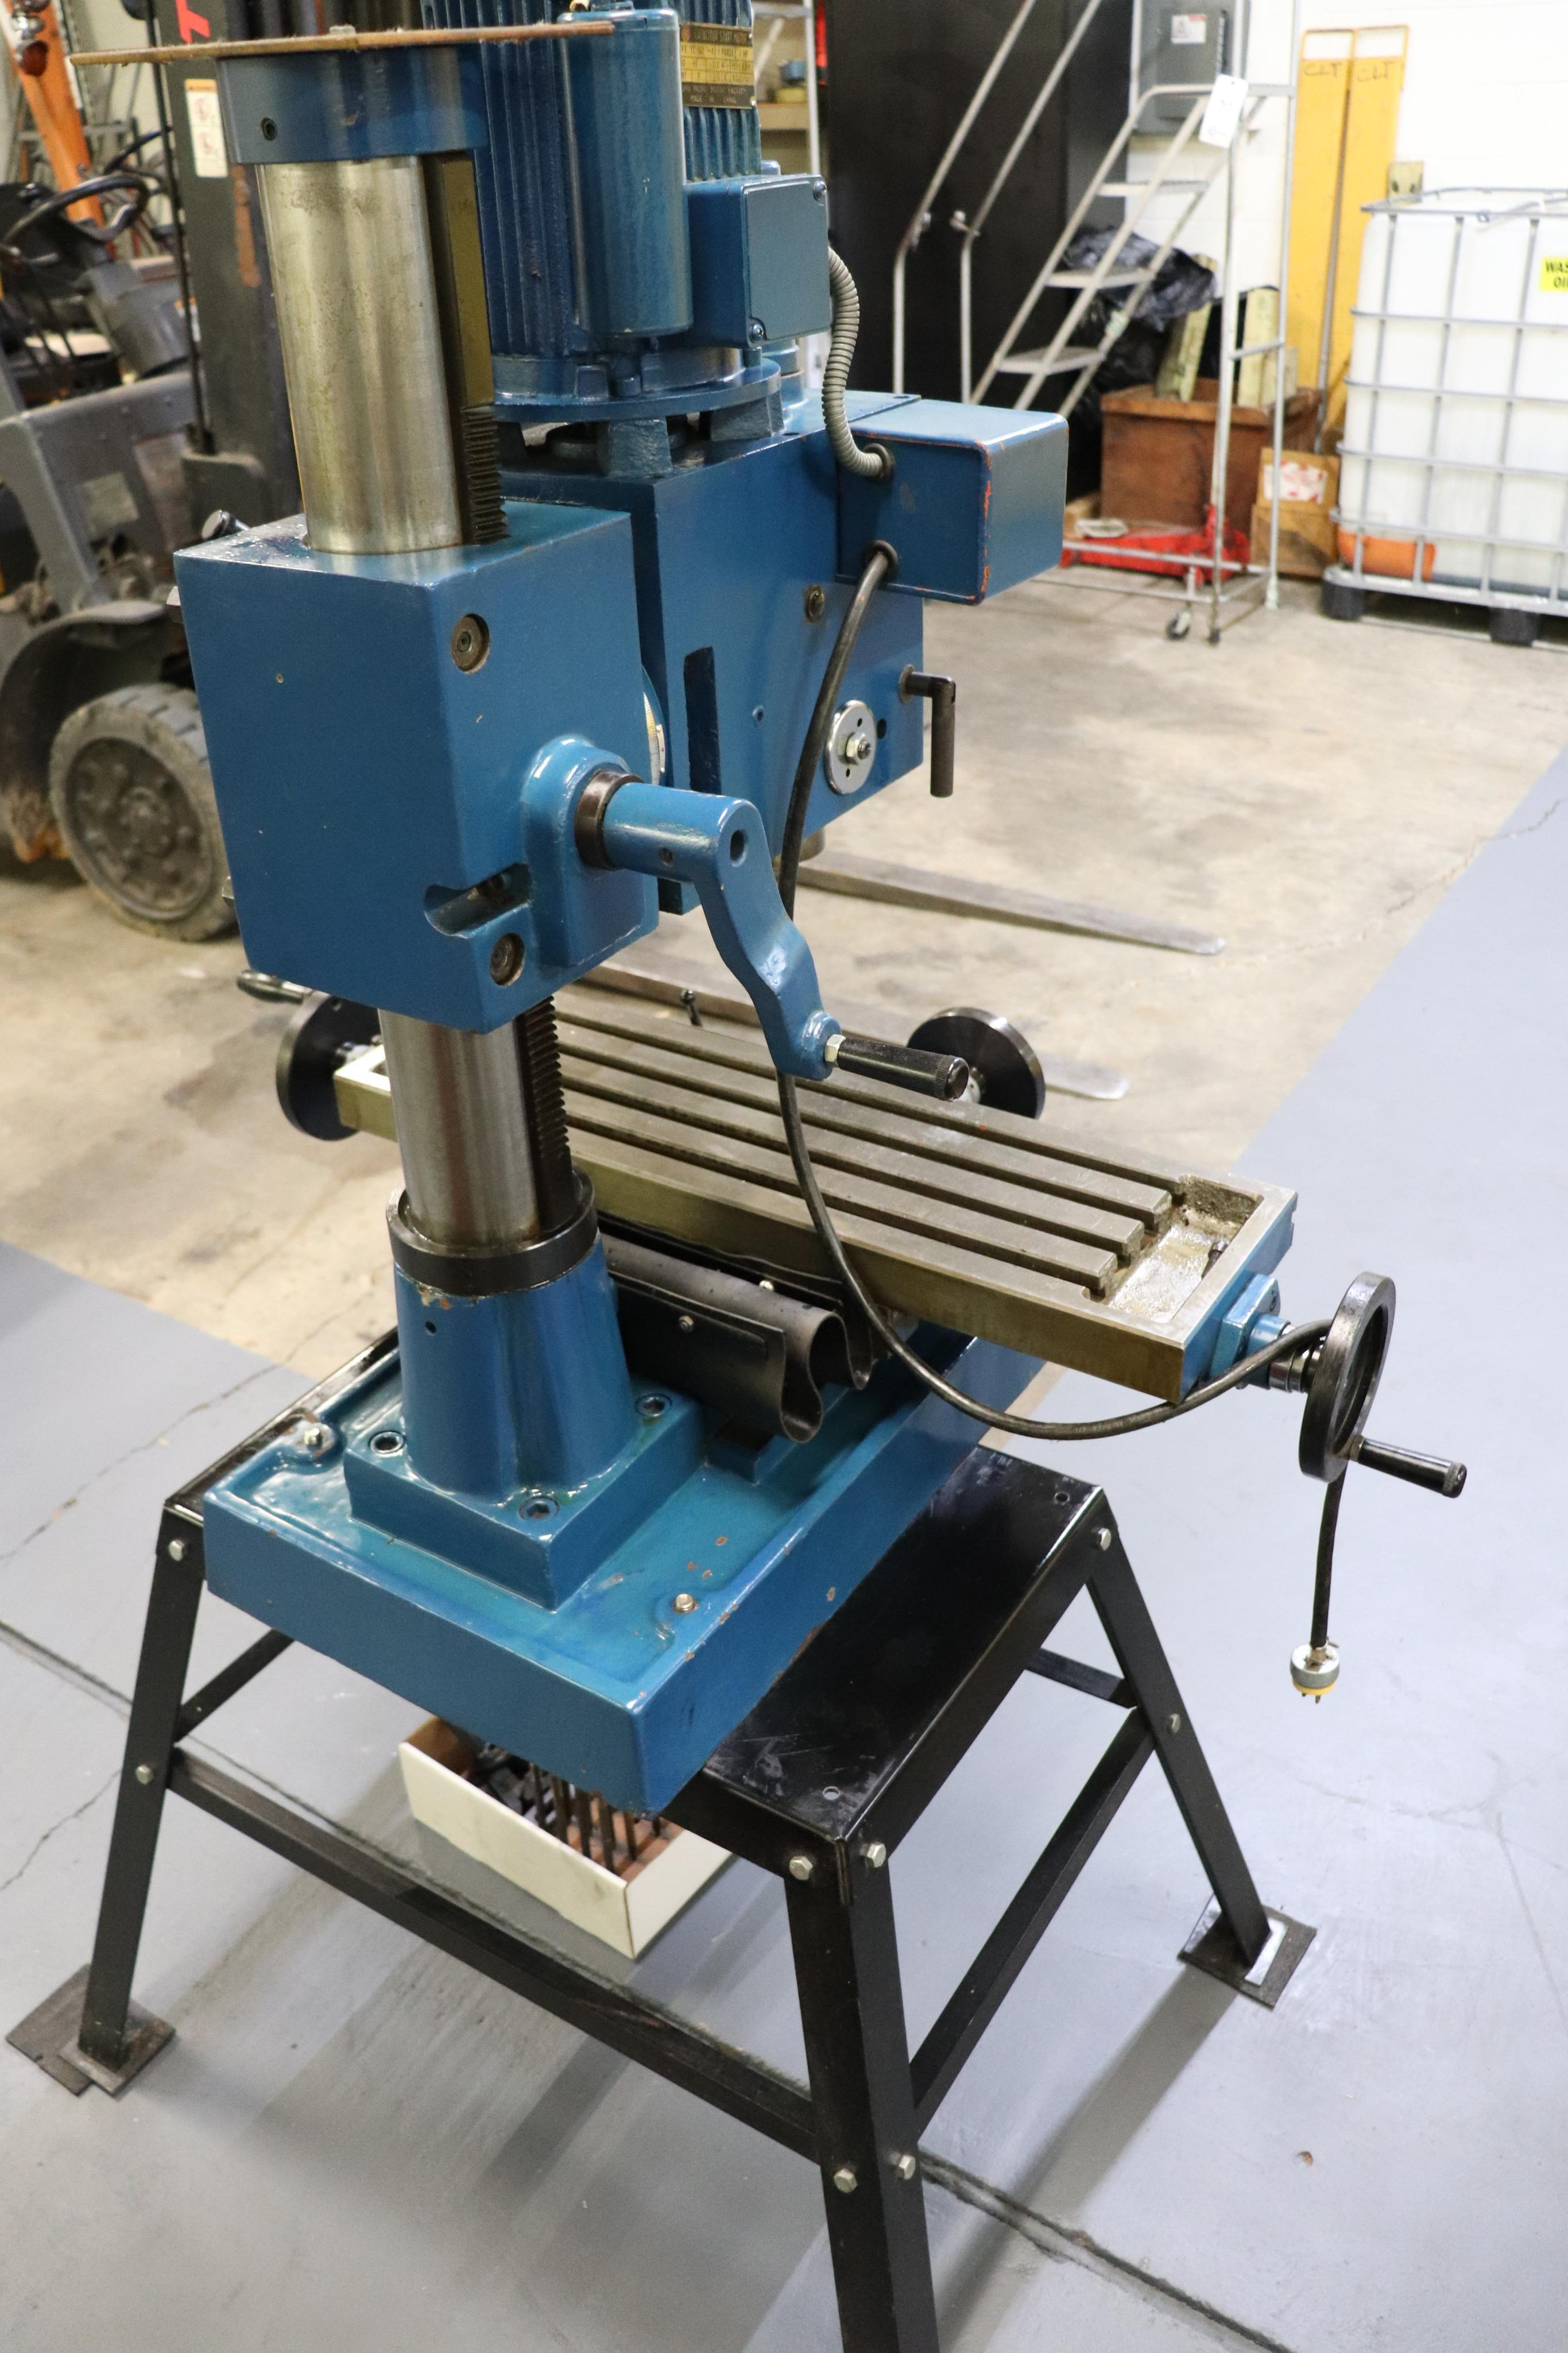 Motor-Car Gear Factory ZX-28 vertical milling machine - Image 5 of 7